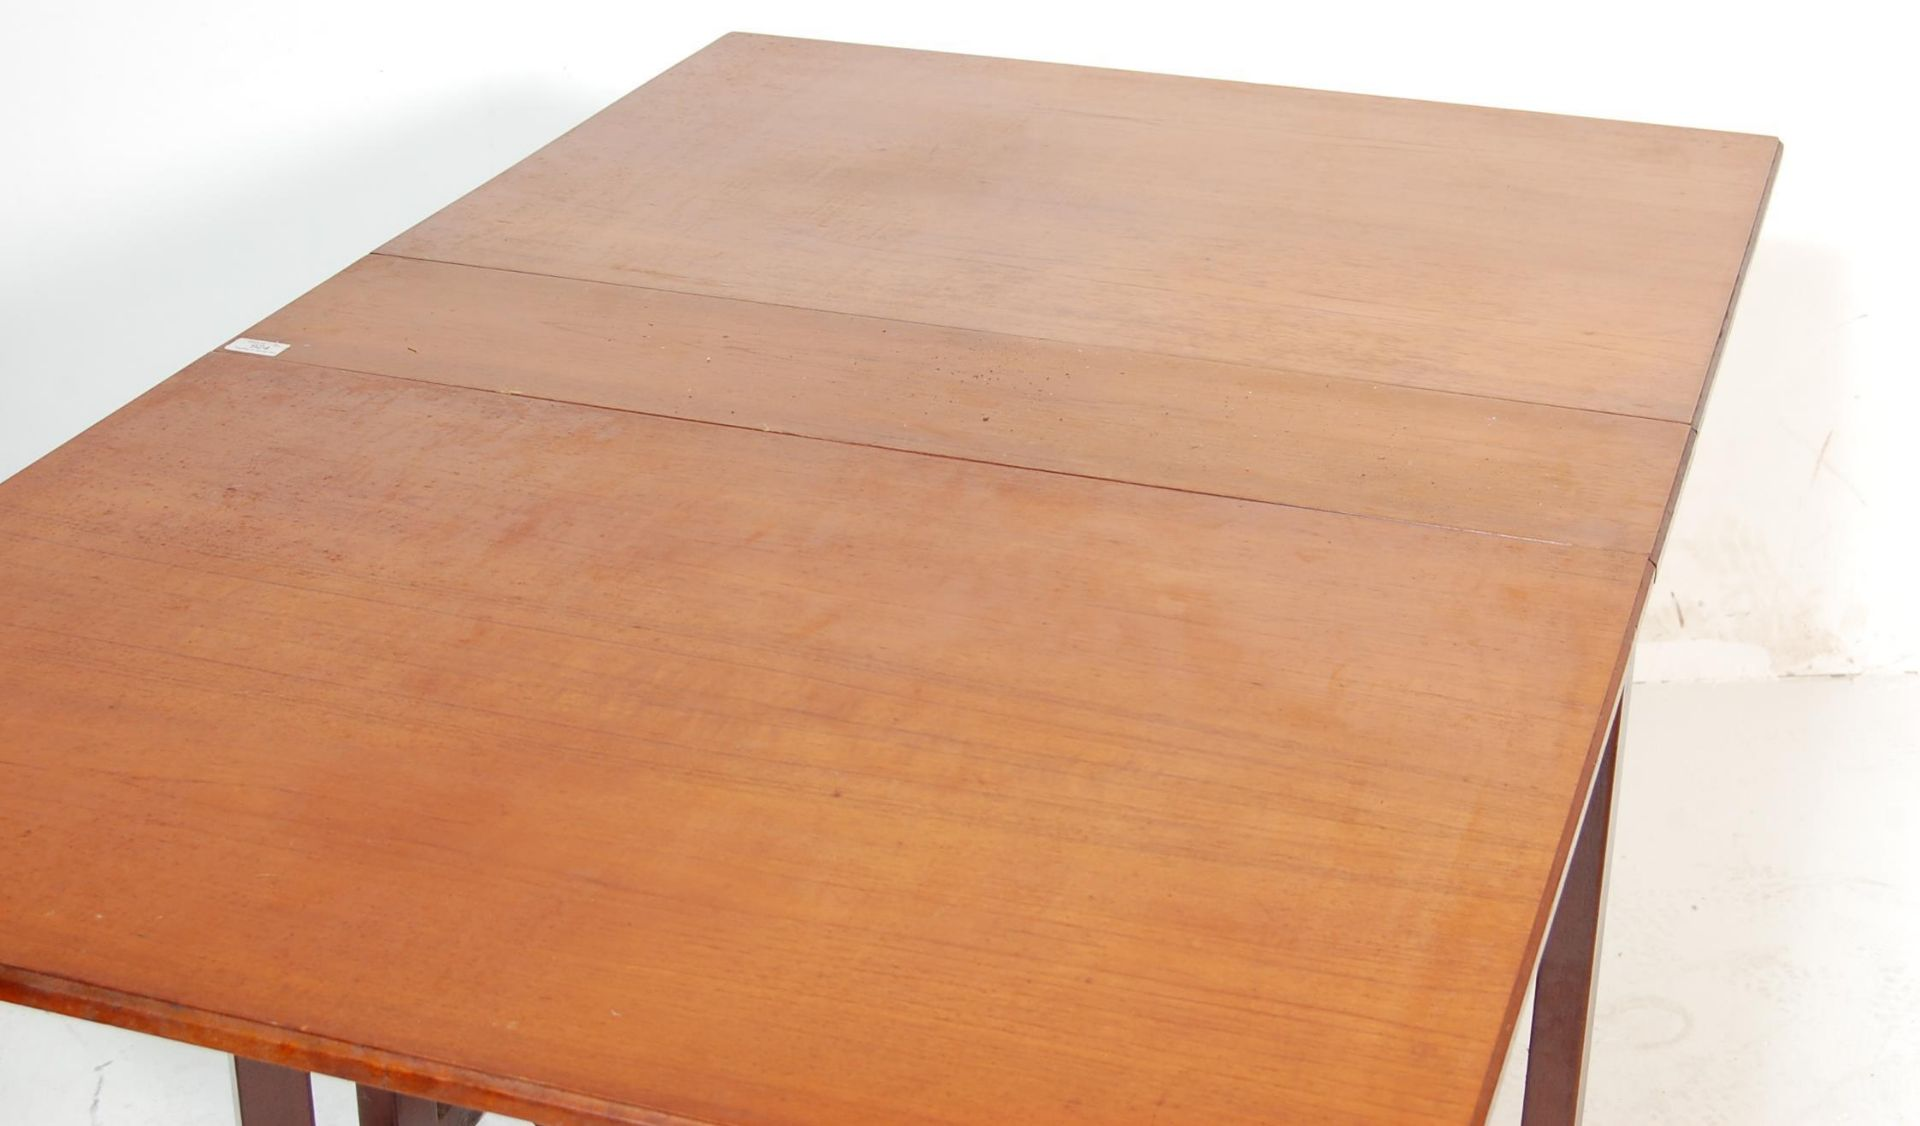 VINTAGE 20TH CENTURY TEAK WOOD DANISH INSPIRED DROP LEAF DINING TABLE - Image 3 of 5